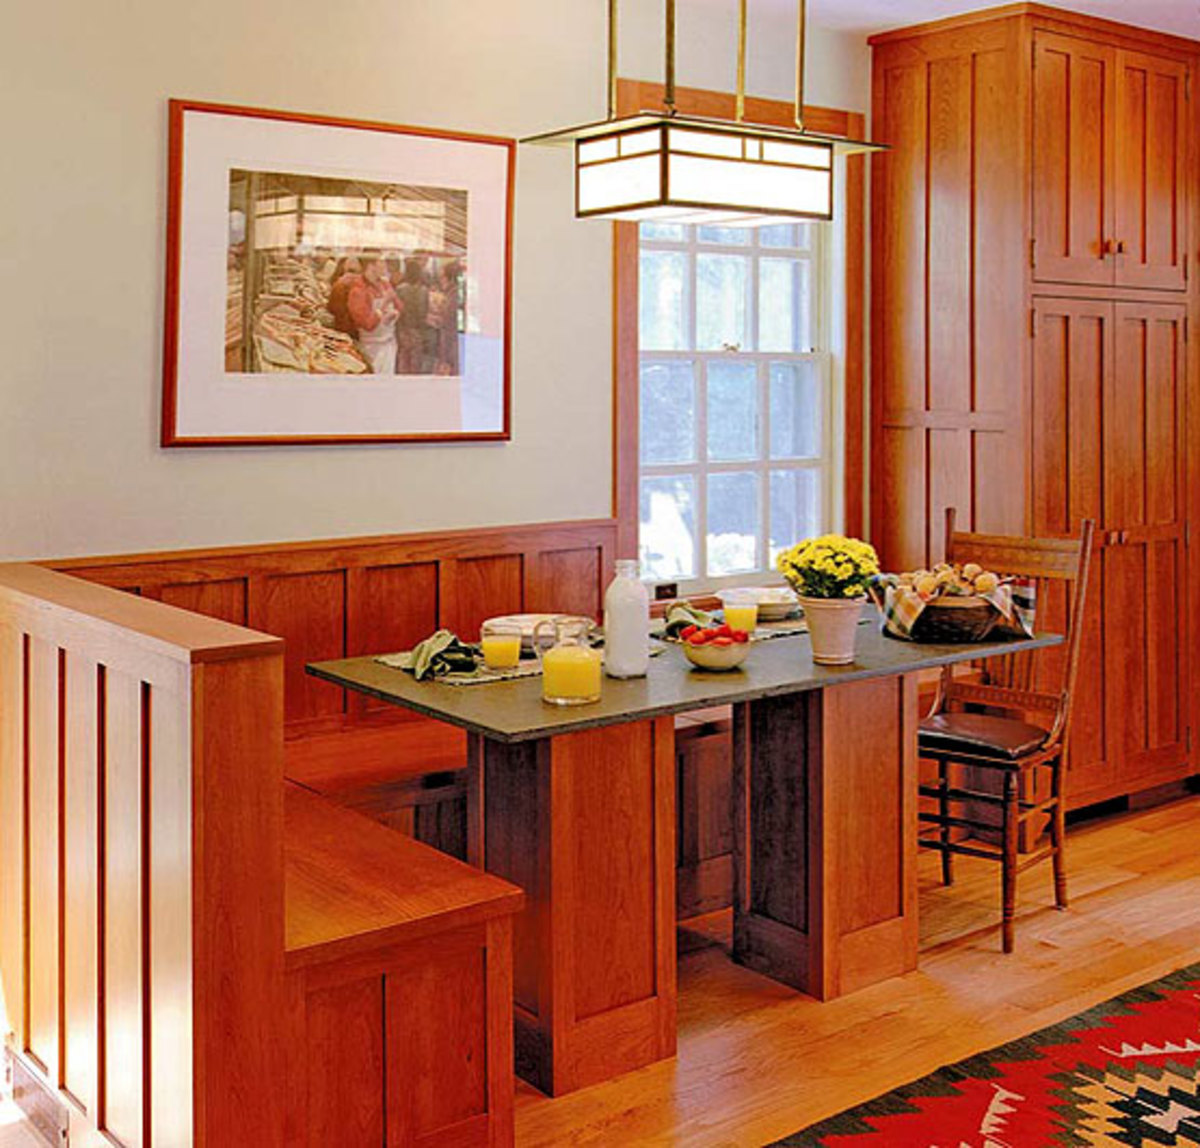 Kitchen Nook Lighting: Lighting To Accent And Define